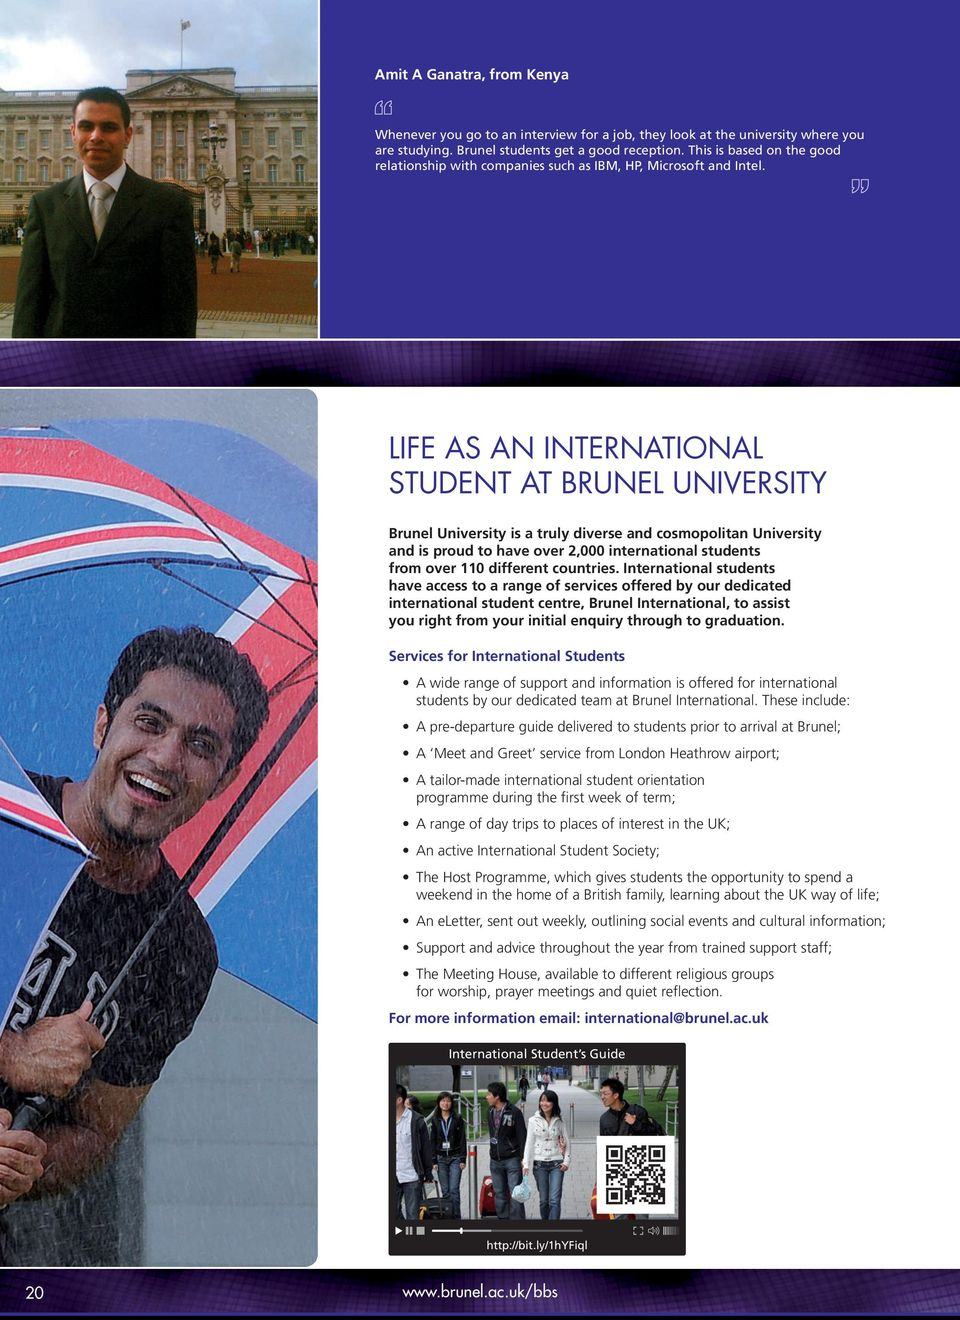 LIFE AS AN INTERNATIONAL STUDENT AT BRUNEL UNIVERSITY Brunel University is a truly diverse and cosmopolitan University and is proud to have over 2,000 international students from over 110 different